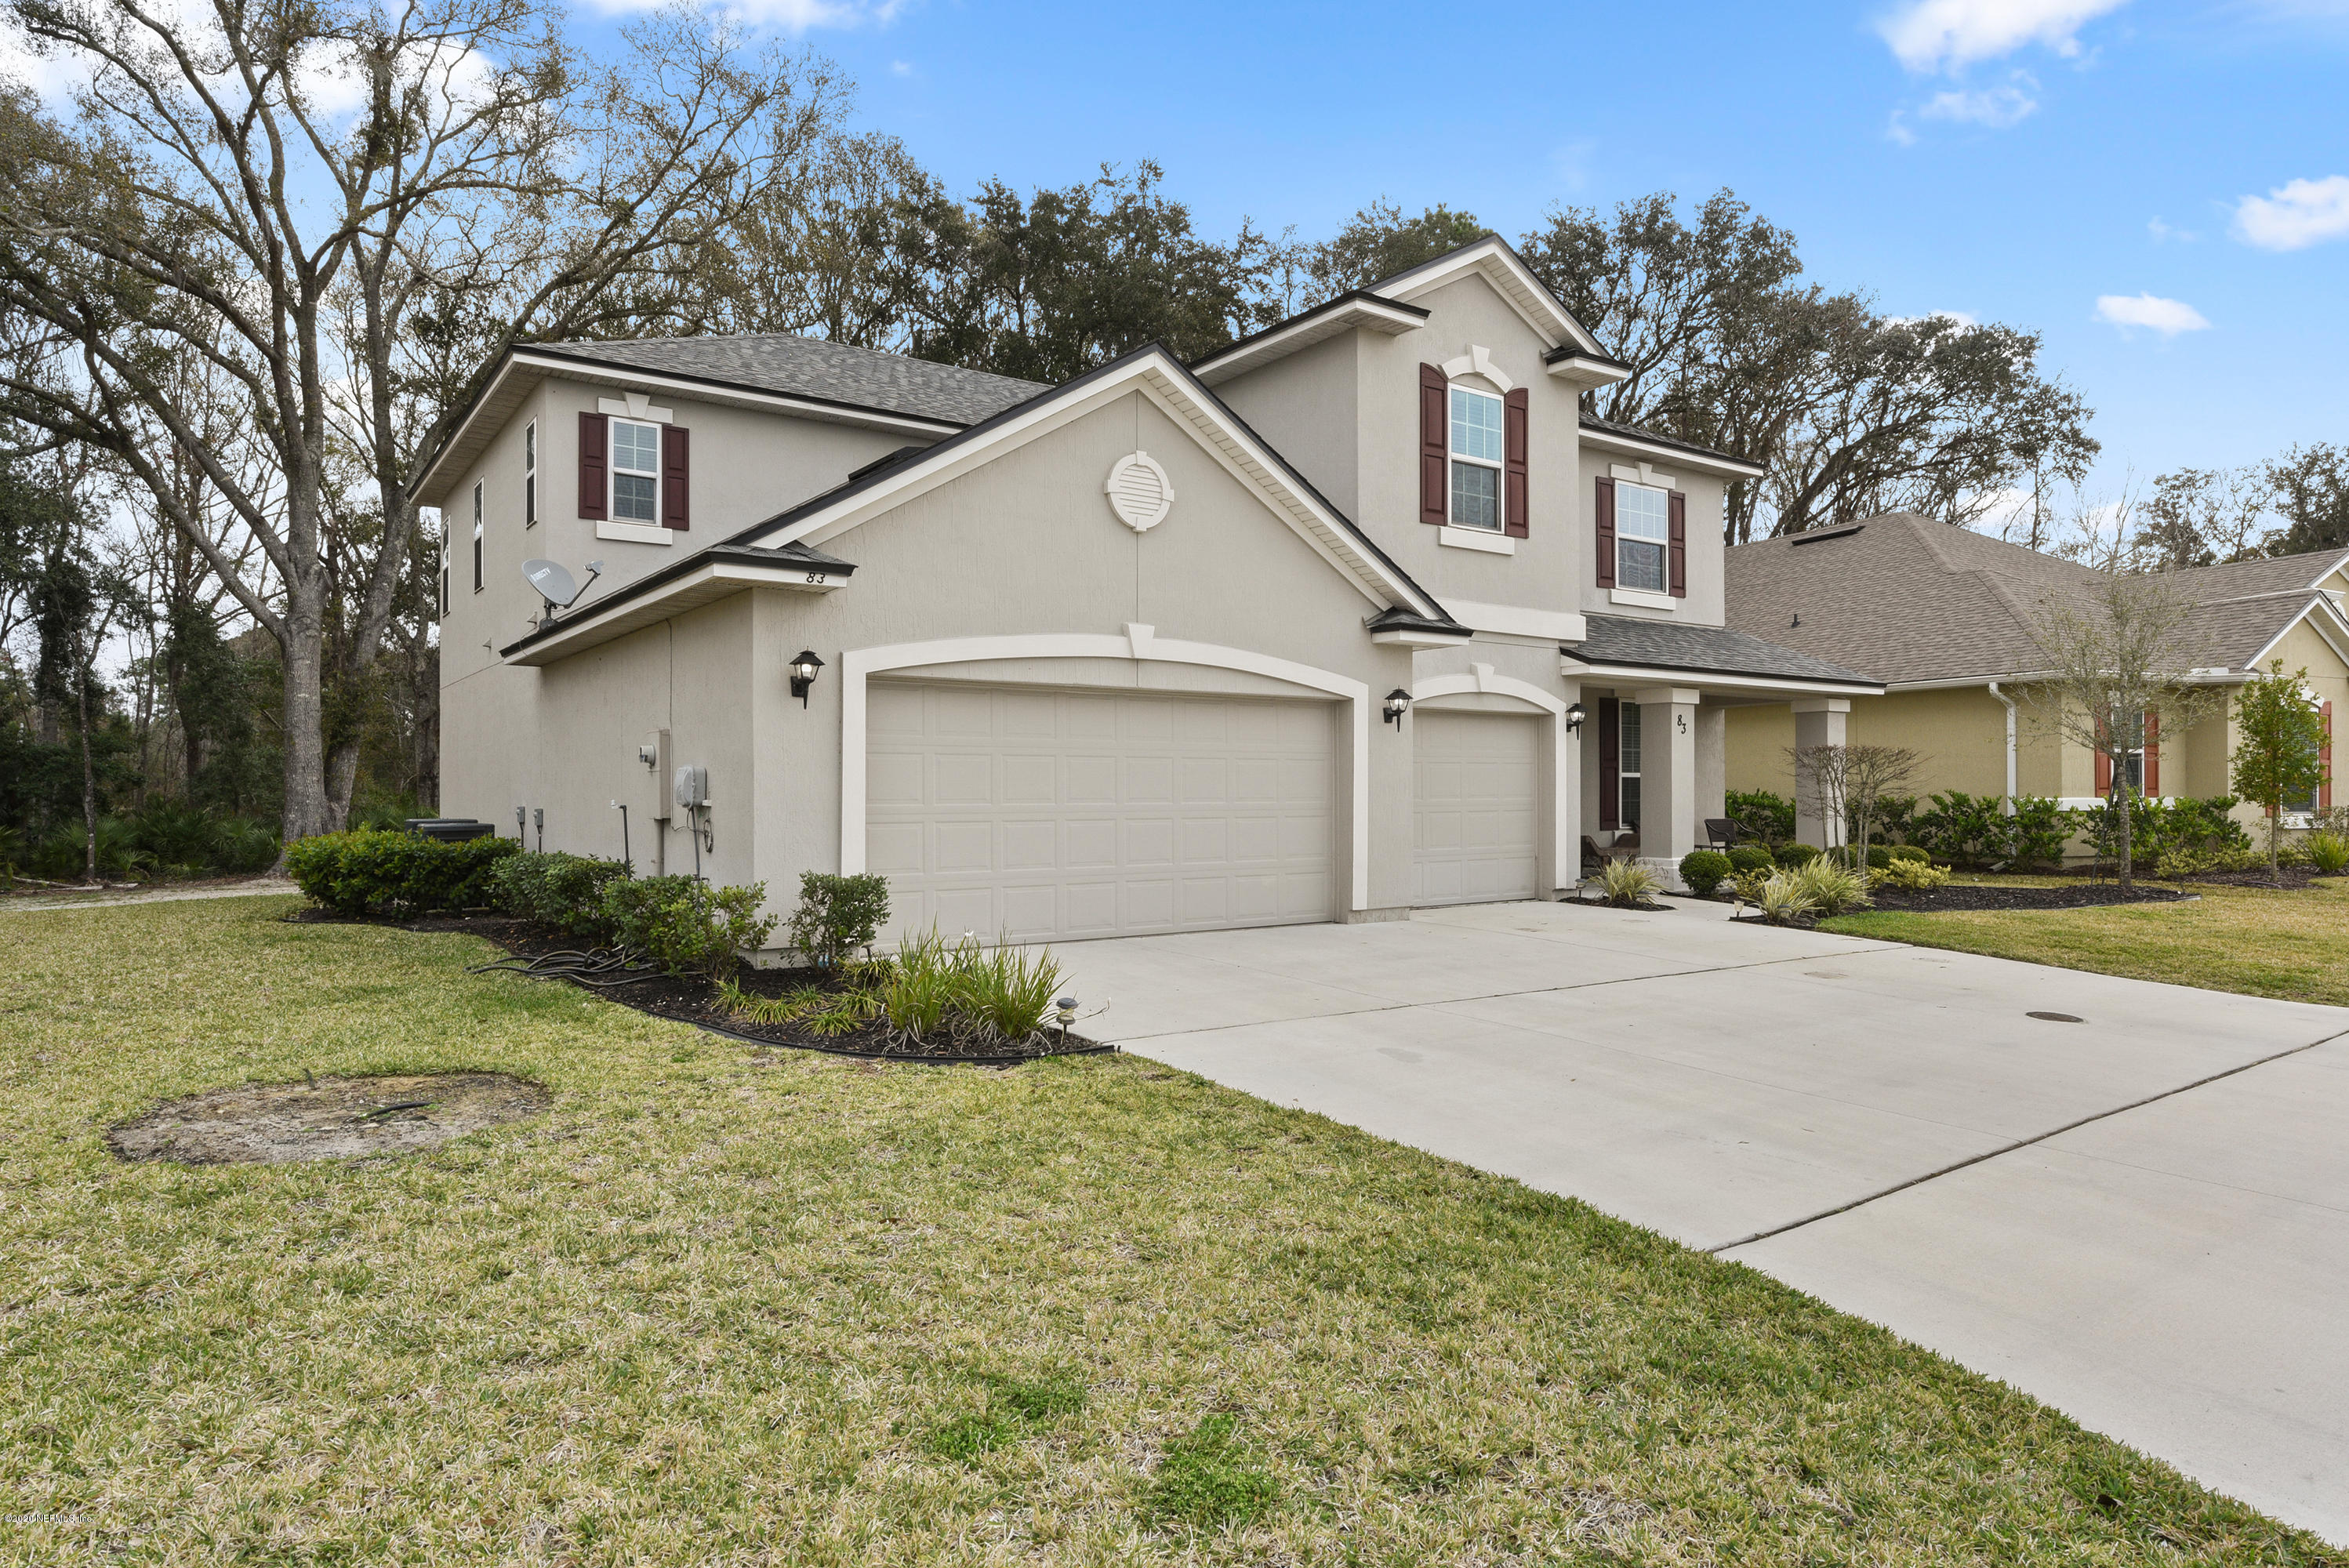 83 MONTIANO, ST AUGUSTINE, FLORIDA 32084, 5 Bedrooms Bedrooms, ,4 BathroomsBathrooms,Residential,For sale,MONTIANO,1056490